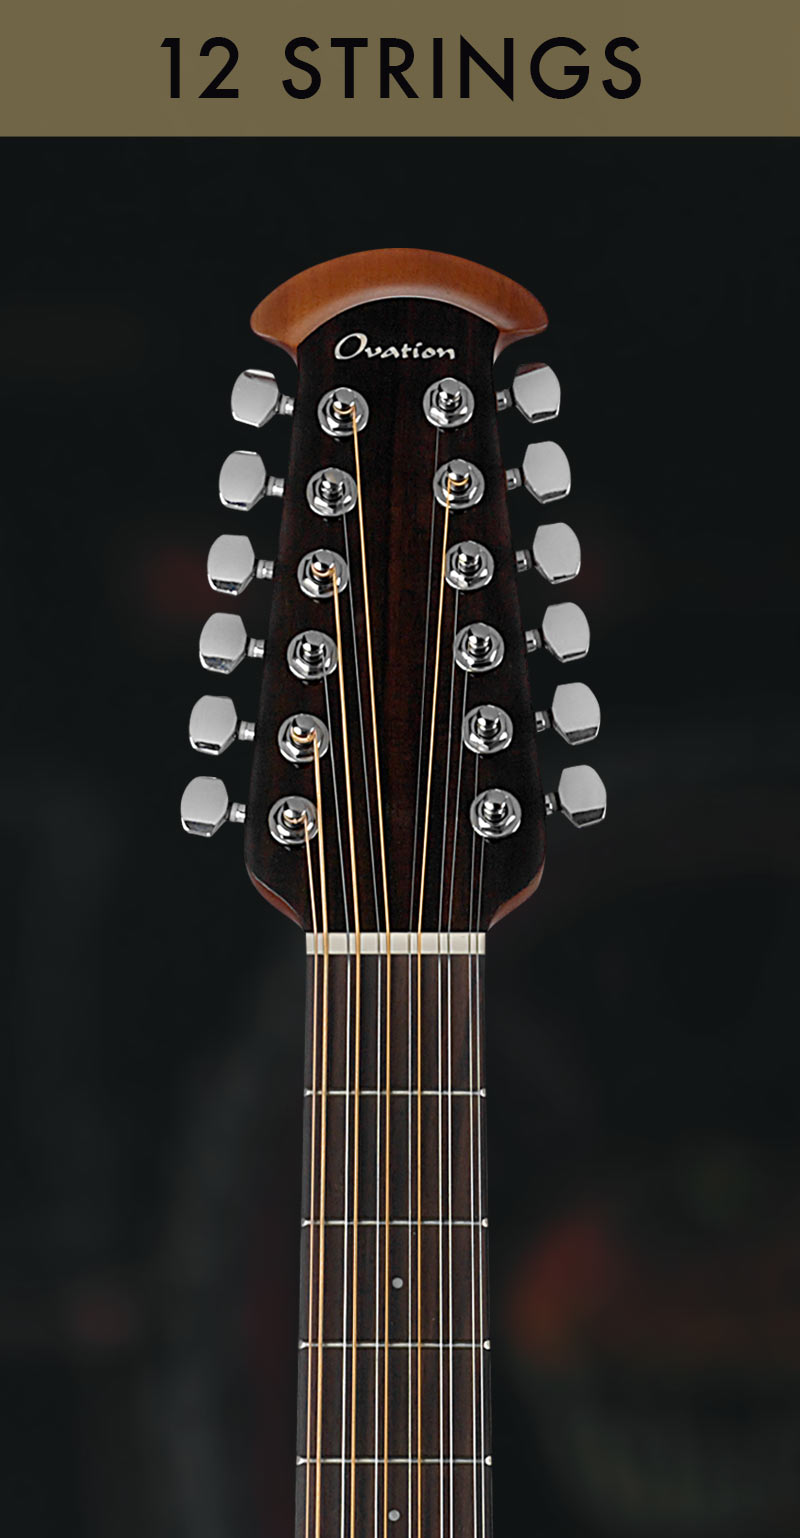 Ovation Guitars To String A Ukulele Diagram Moreover How